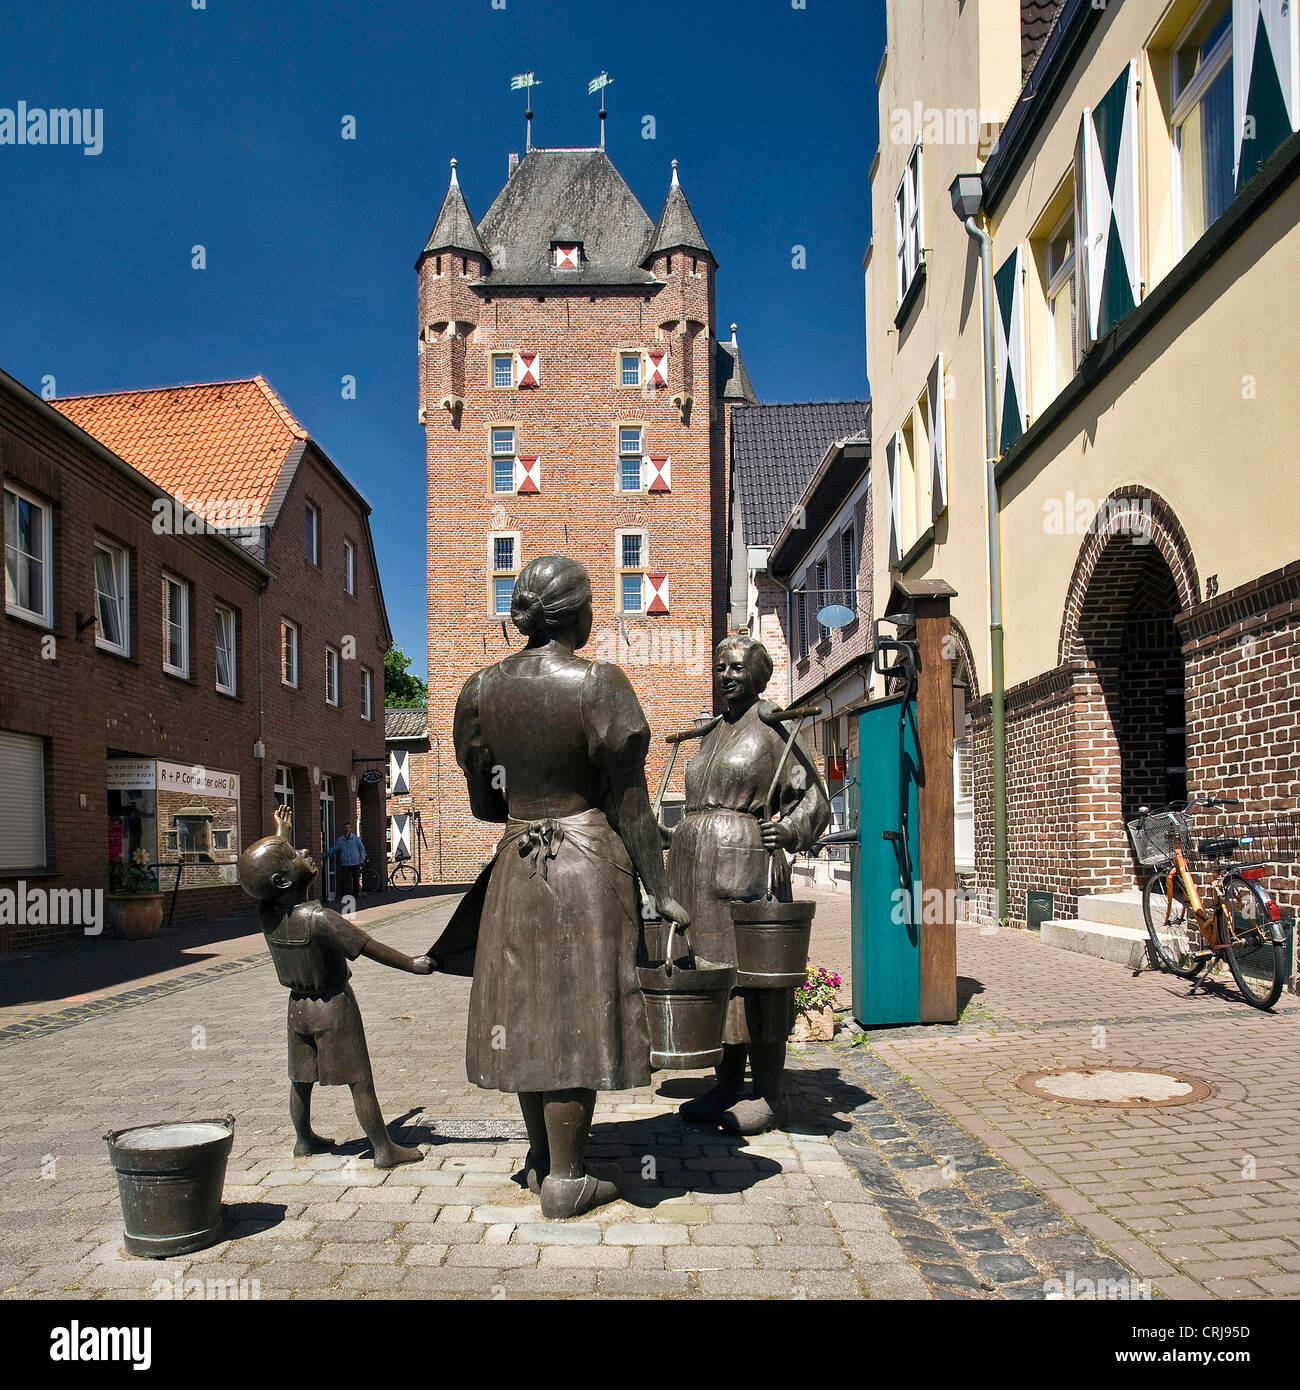 Sculpture Of Women At A Water Pump In The City Of Xanten Gate Kleve